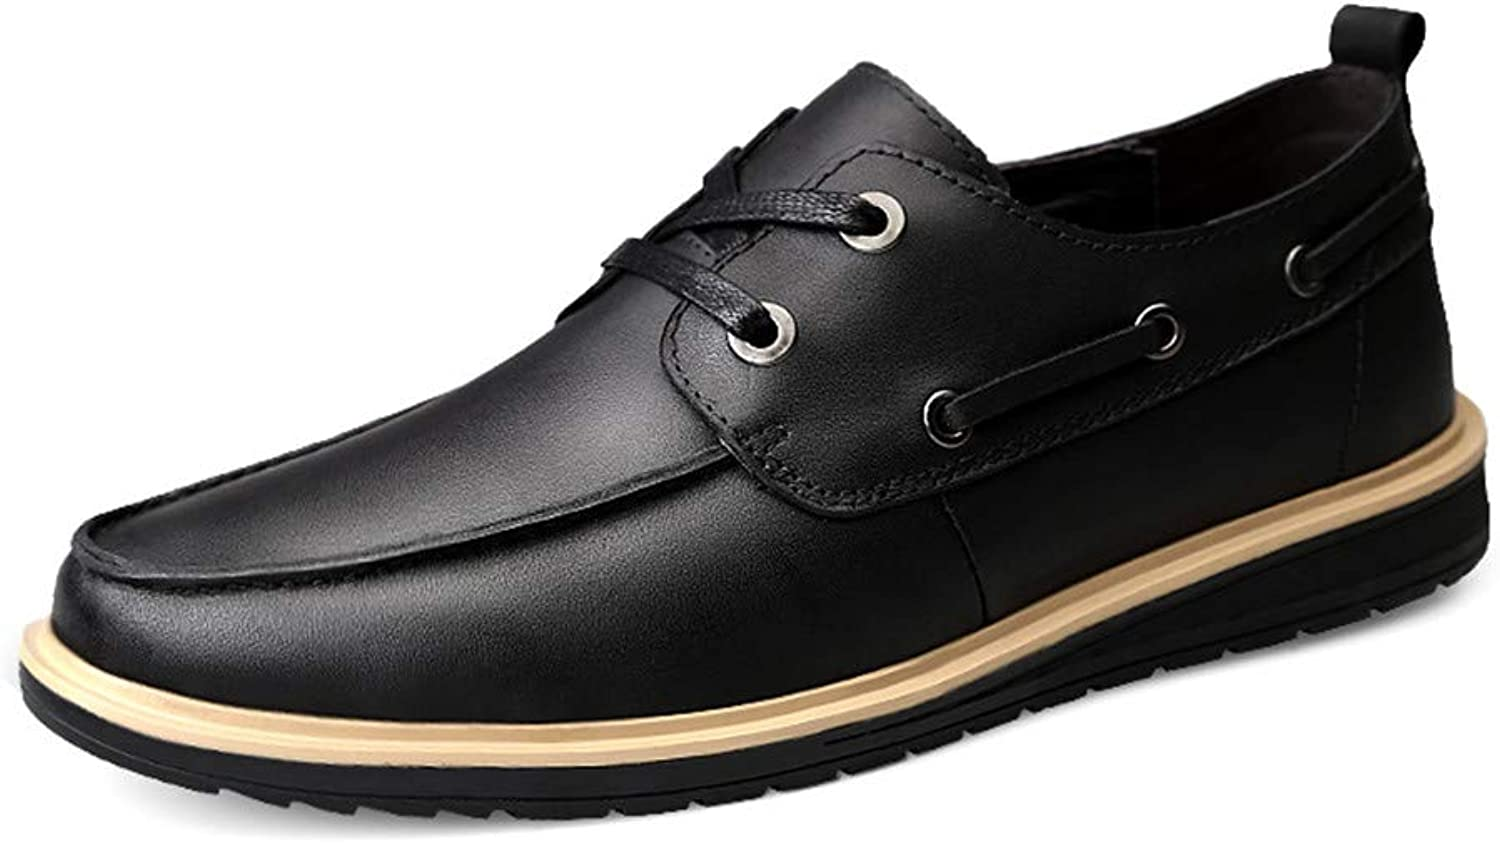 CHENXD shoes, Men's Fashion Round Toe Oxford Casual Personality Light and Comfortable Formal shoes